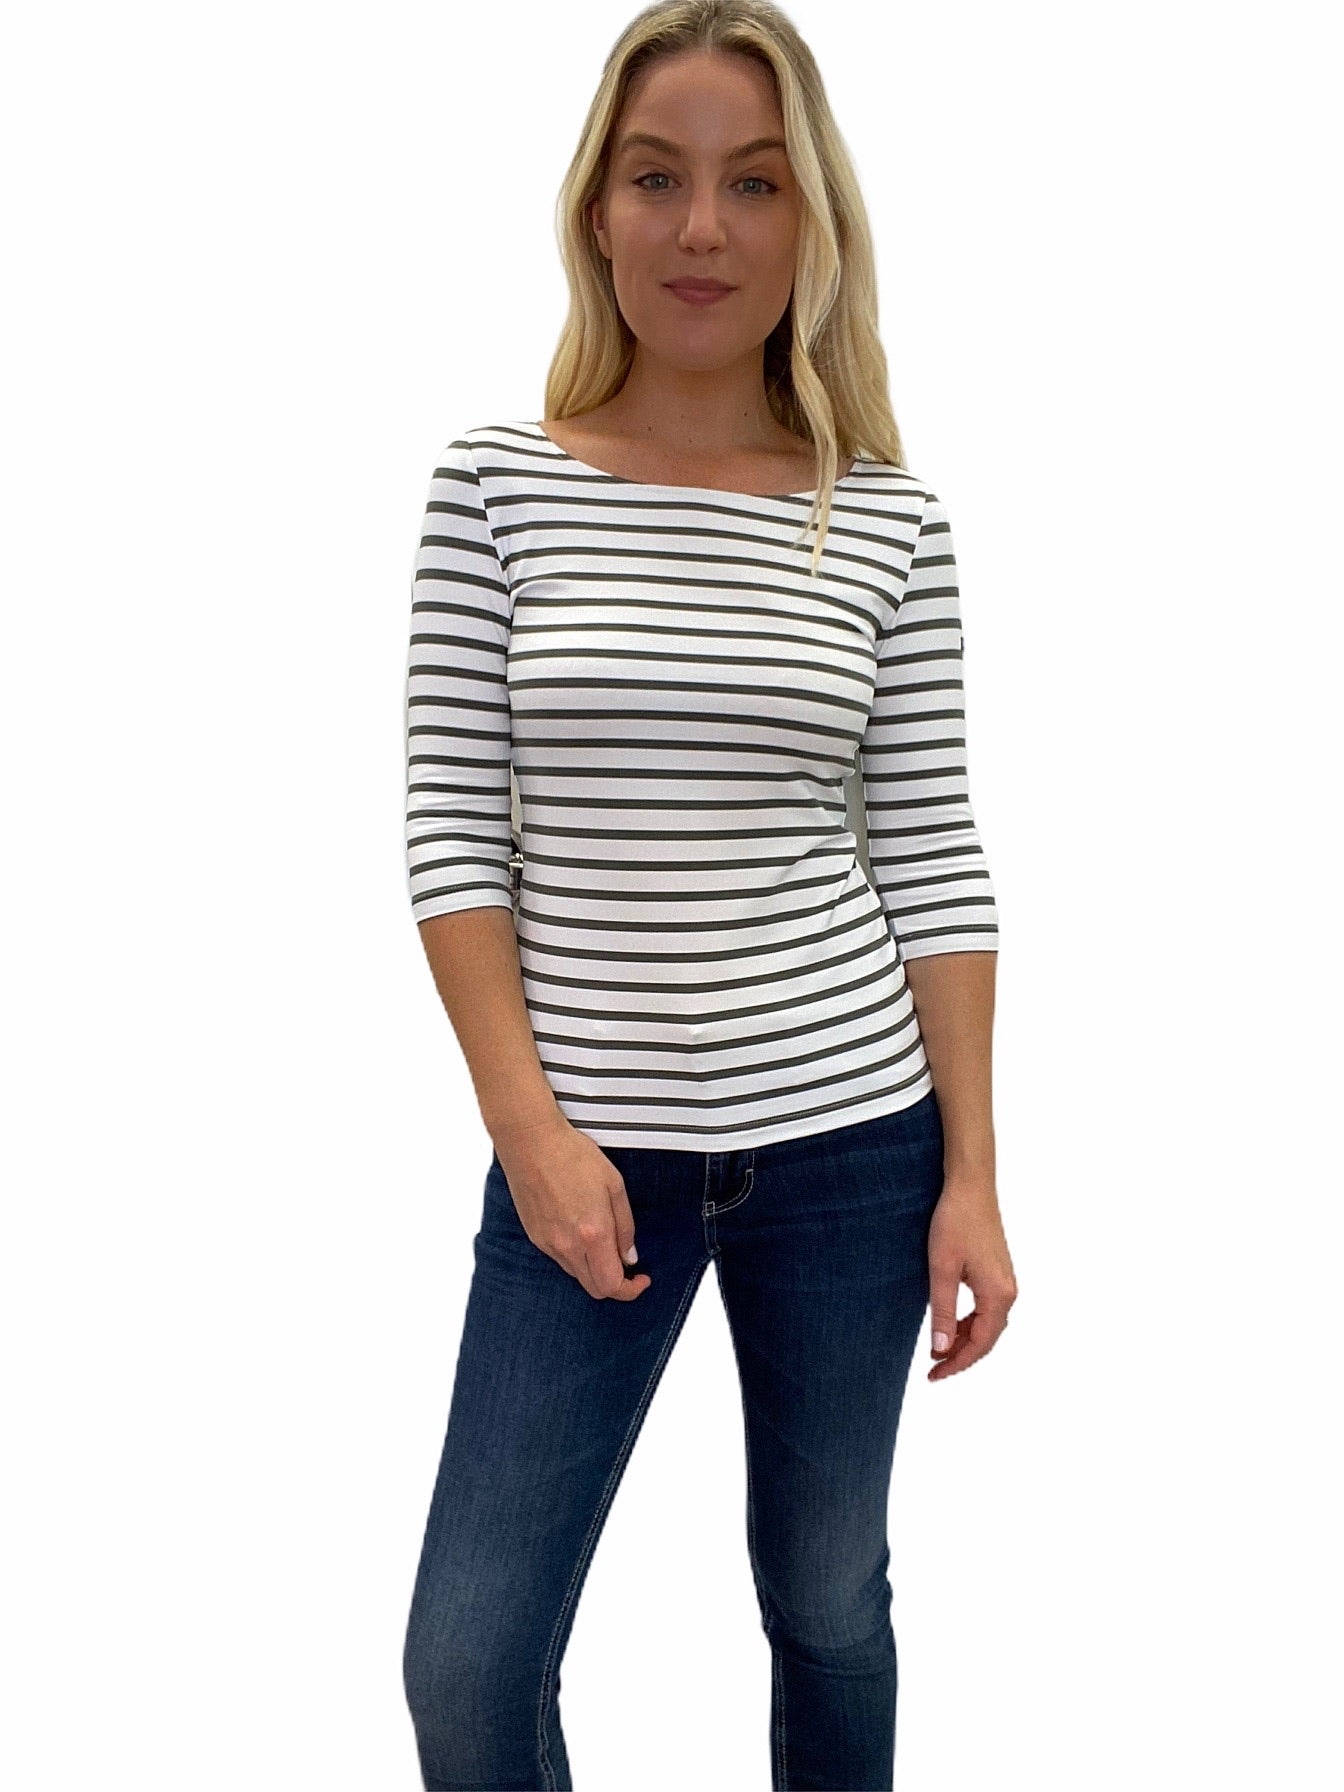 GARDE-COTE III Stripe Stretch Tee